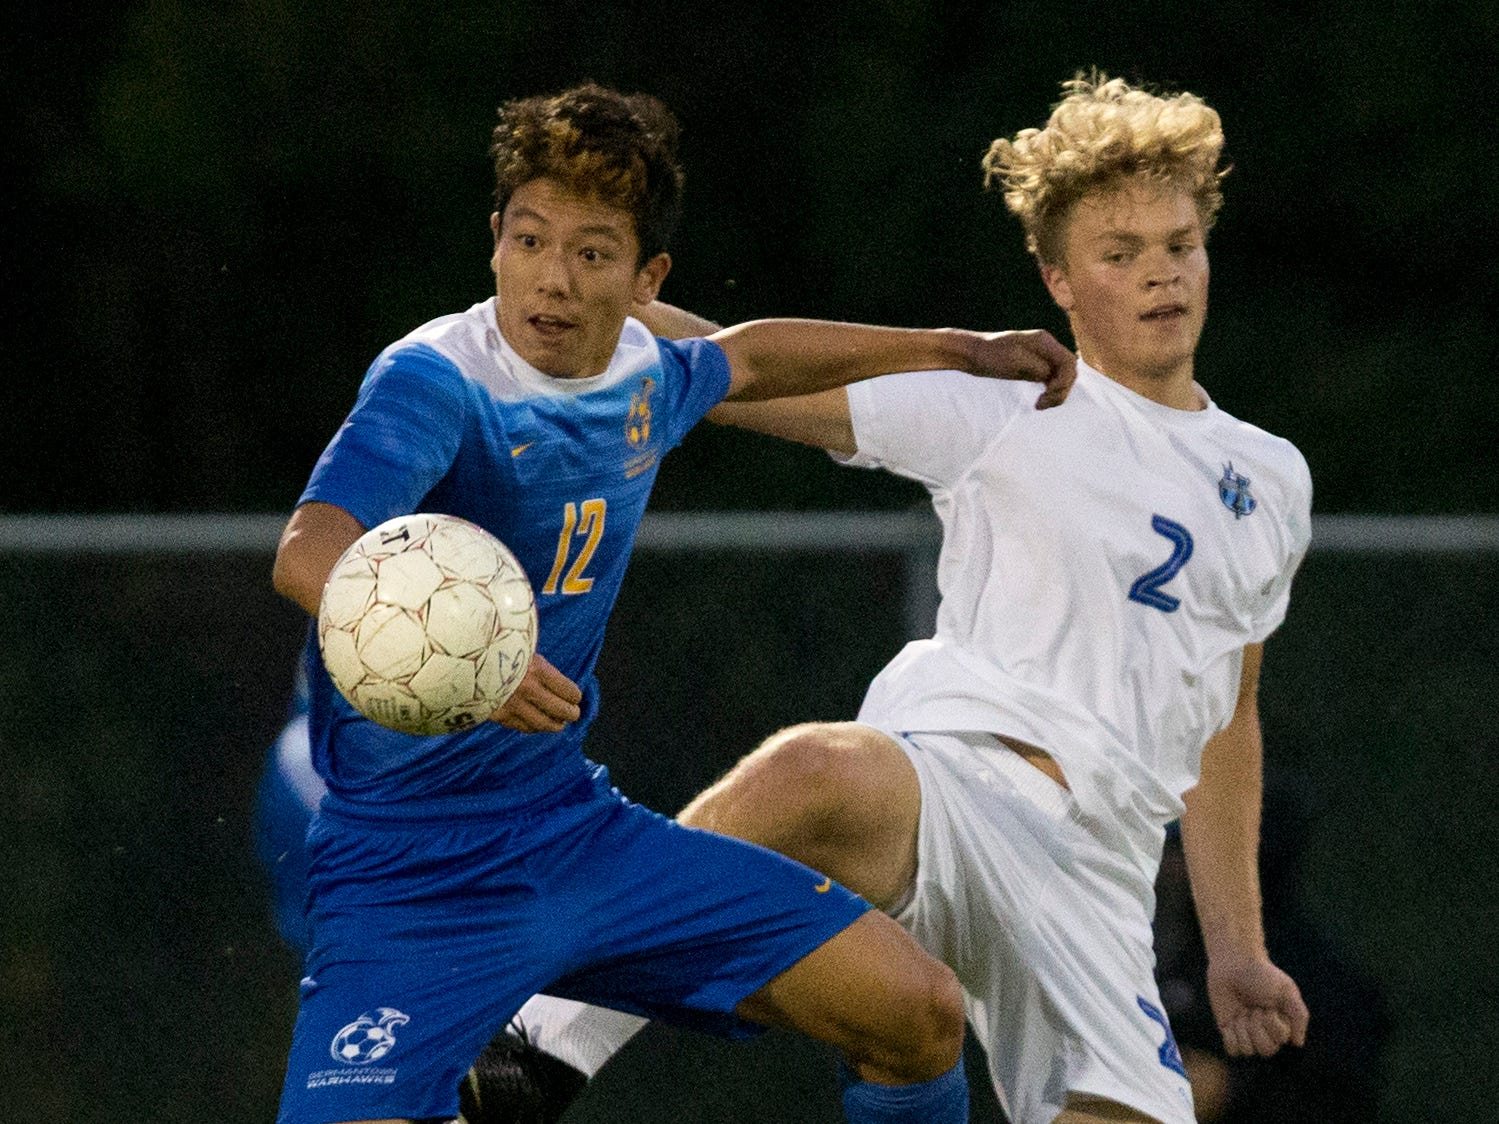 Germantown's Joshua Wu and Brookfield Central's Collin Heyden battle for the ball at Germantown on Sept. 13.